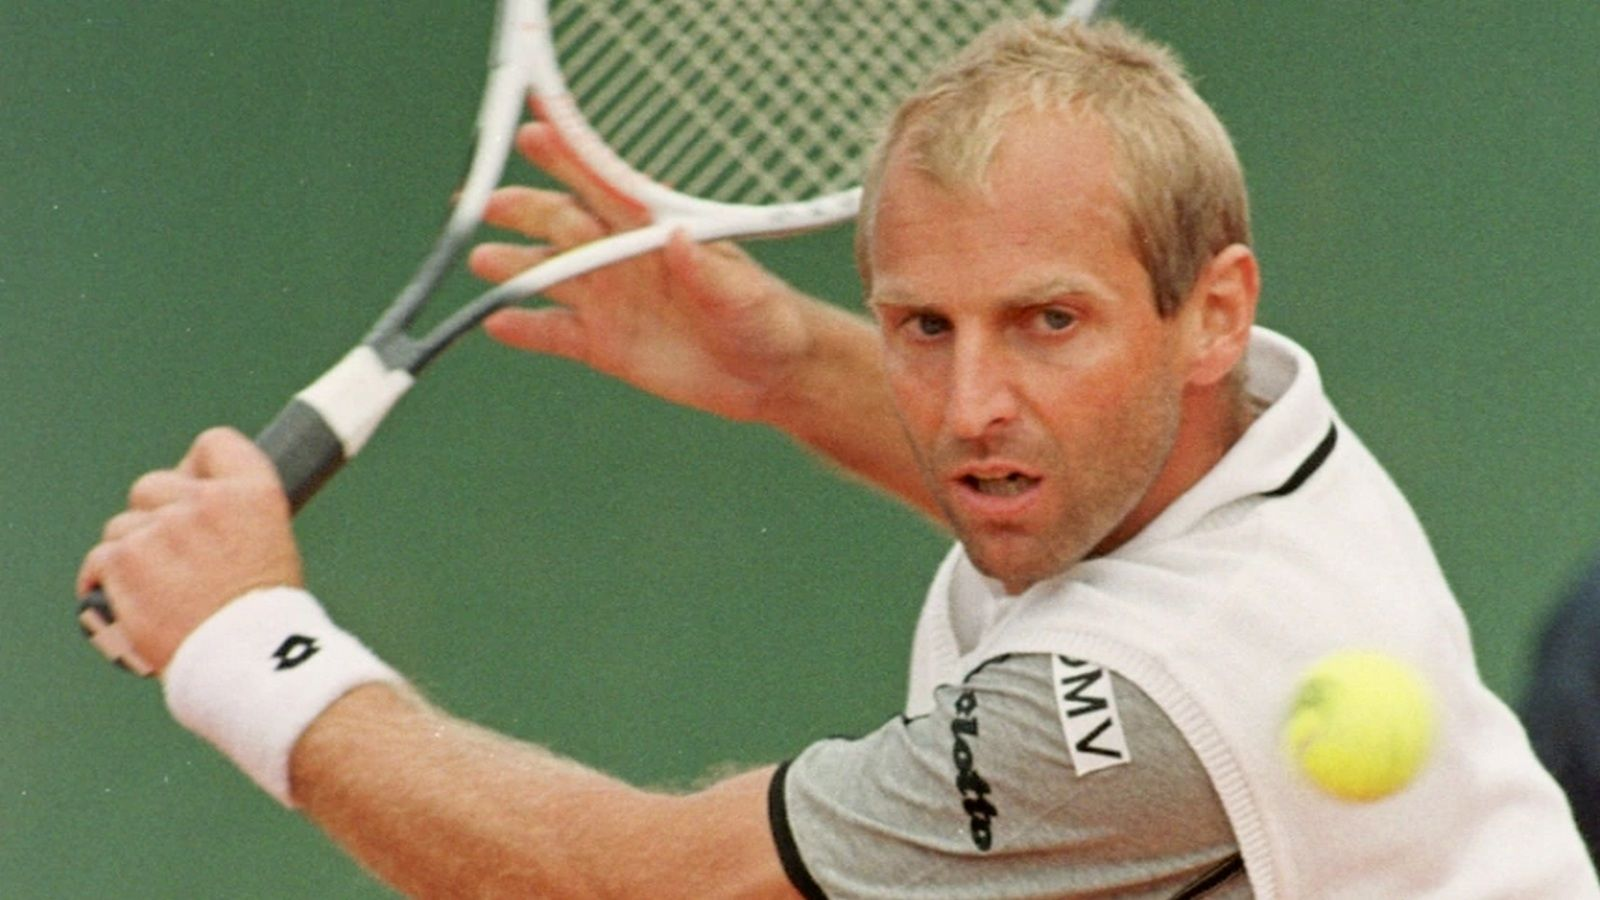 The classic tennis player: Thomas Muster